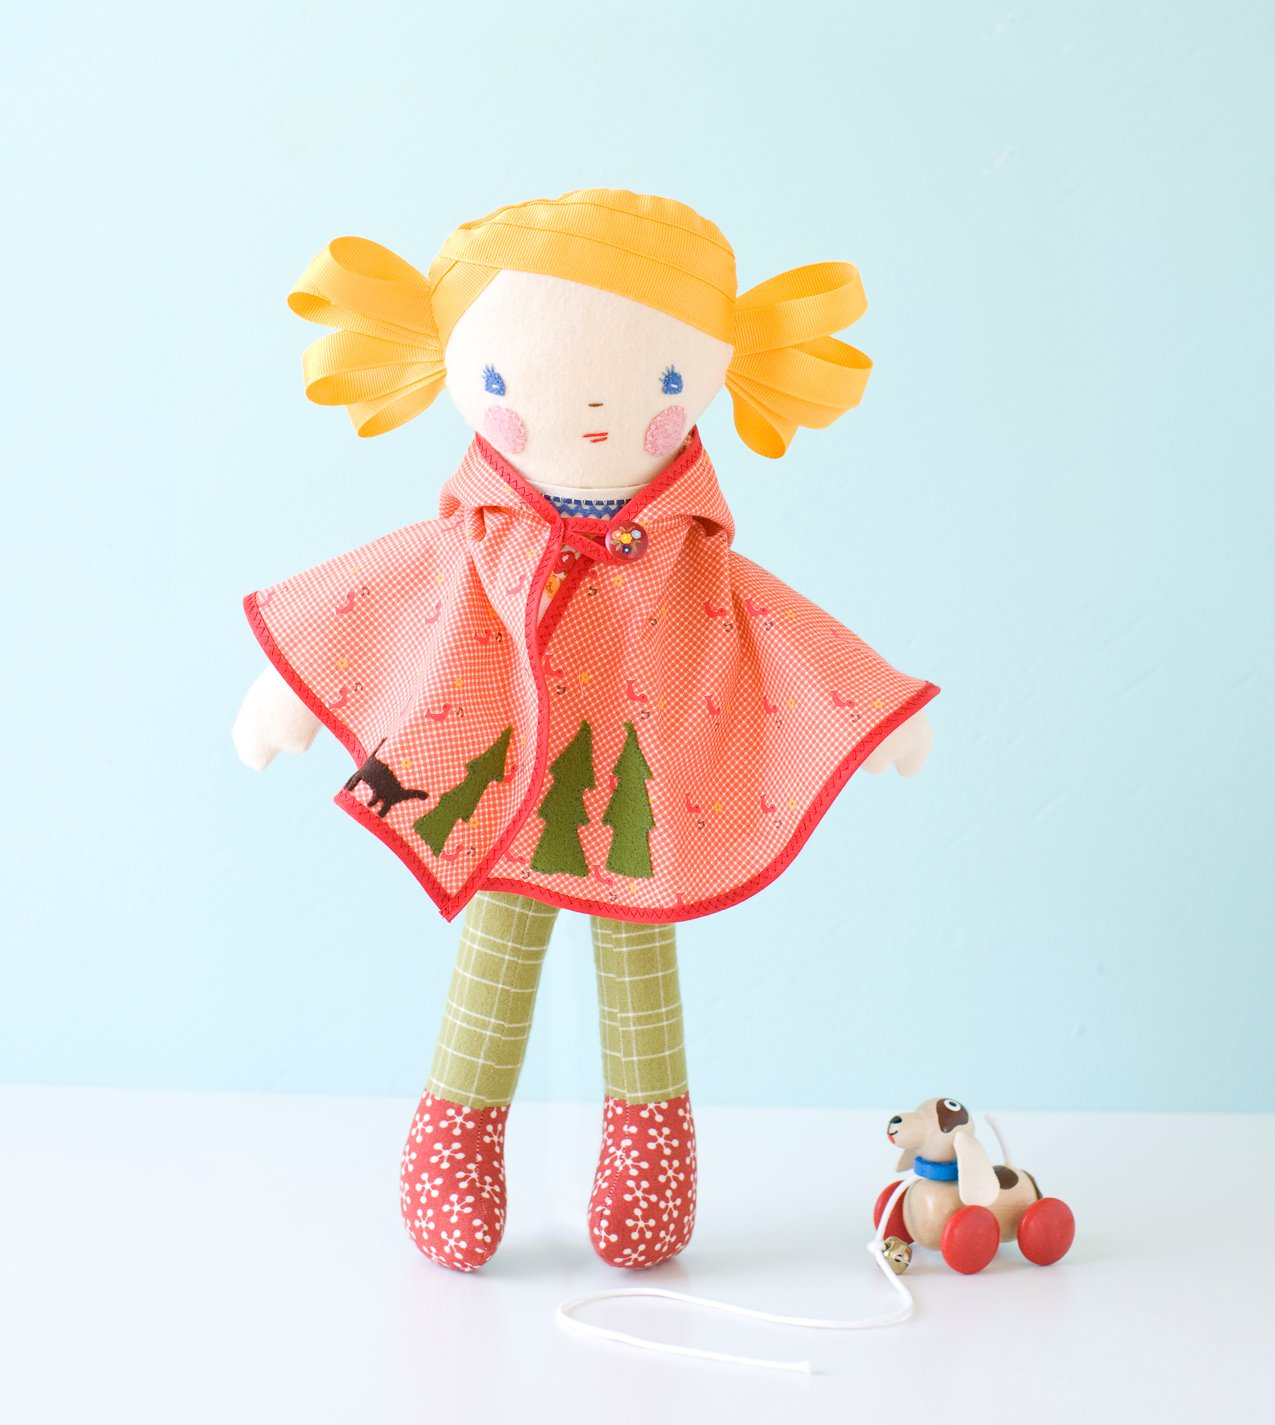 Storybook doll from the book